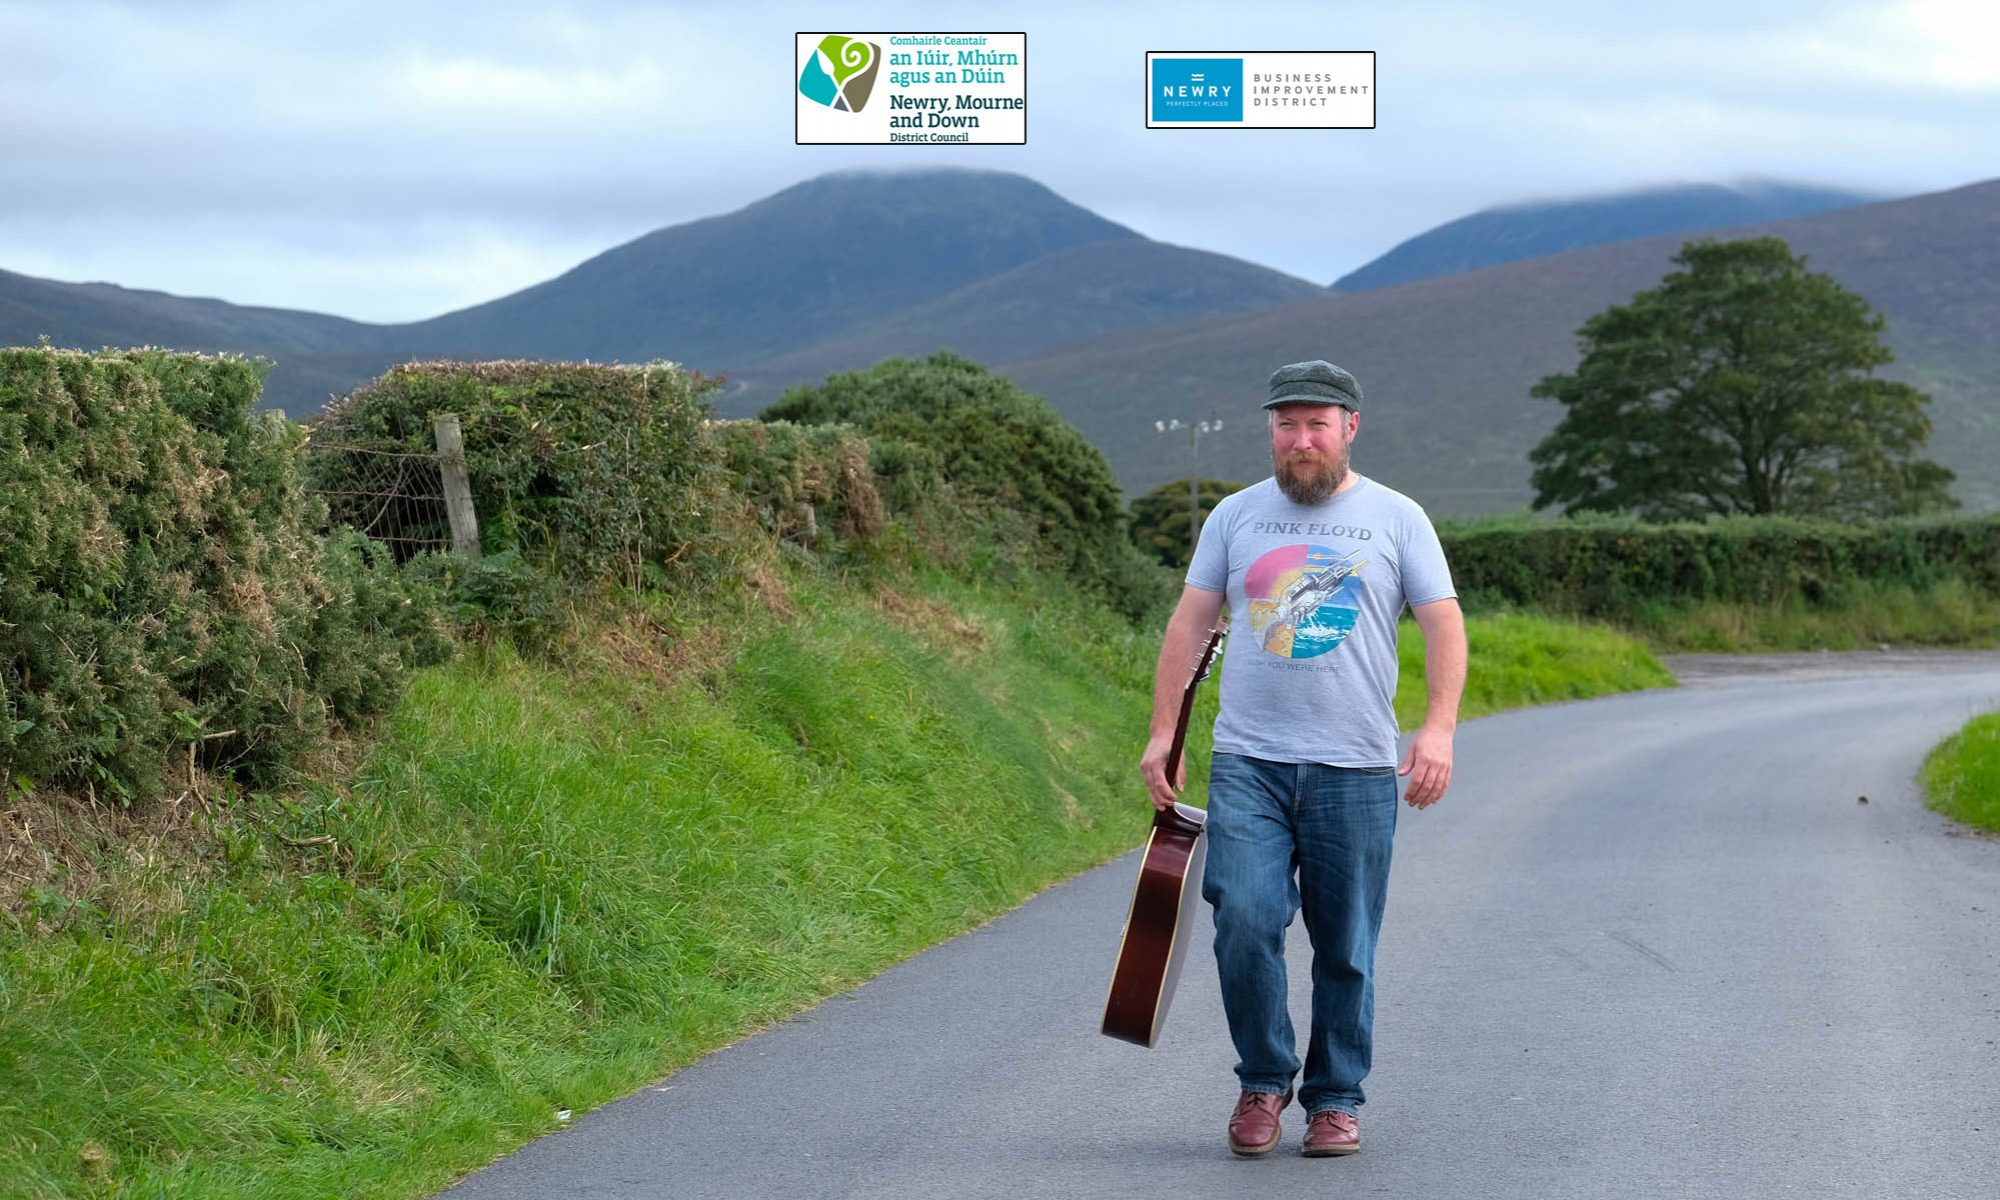 Experience the Virtual IÚR CINN FLEADH 2020 - Rescheduled Dates to be Confirmed (See story below)